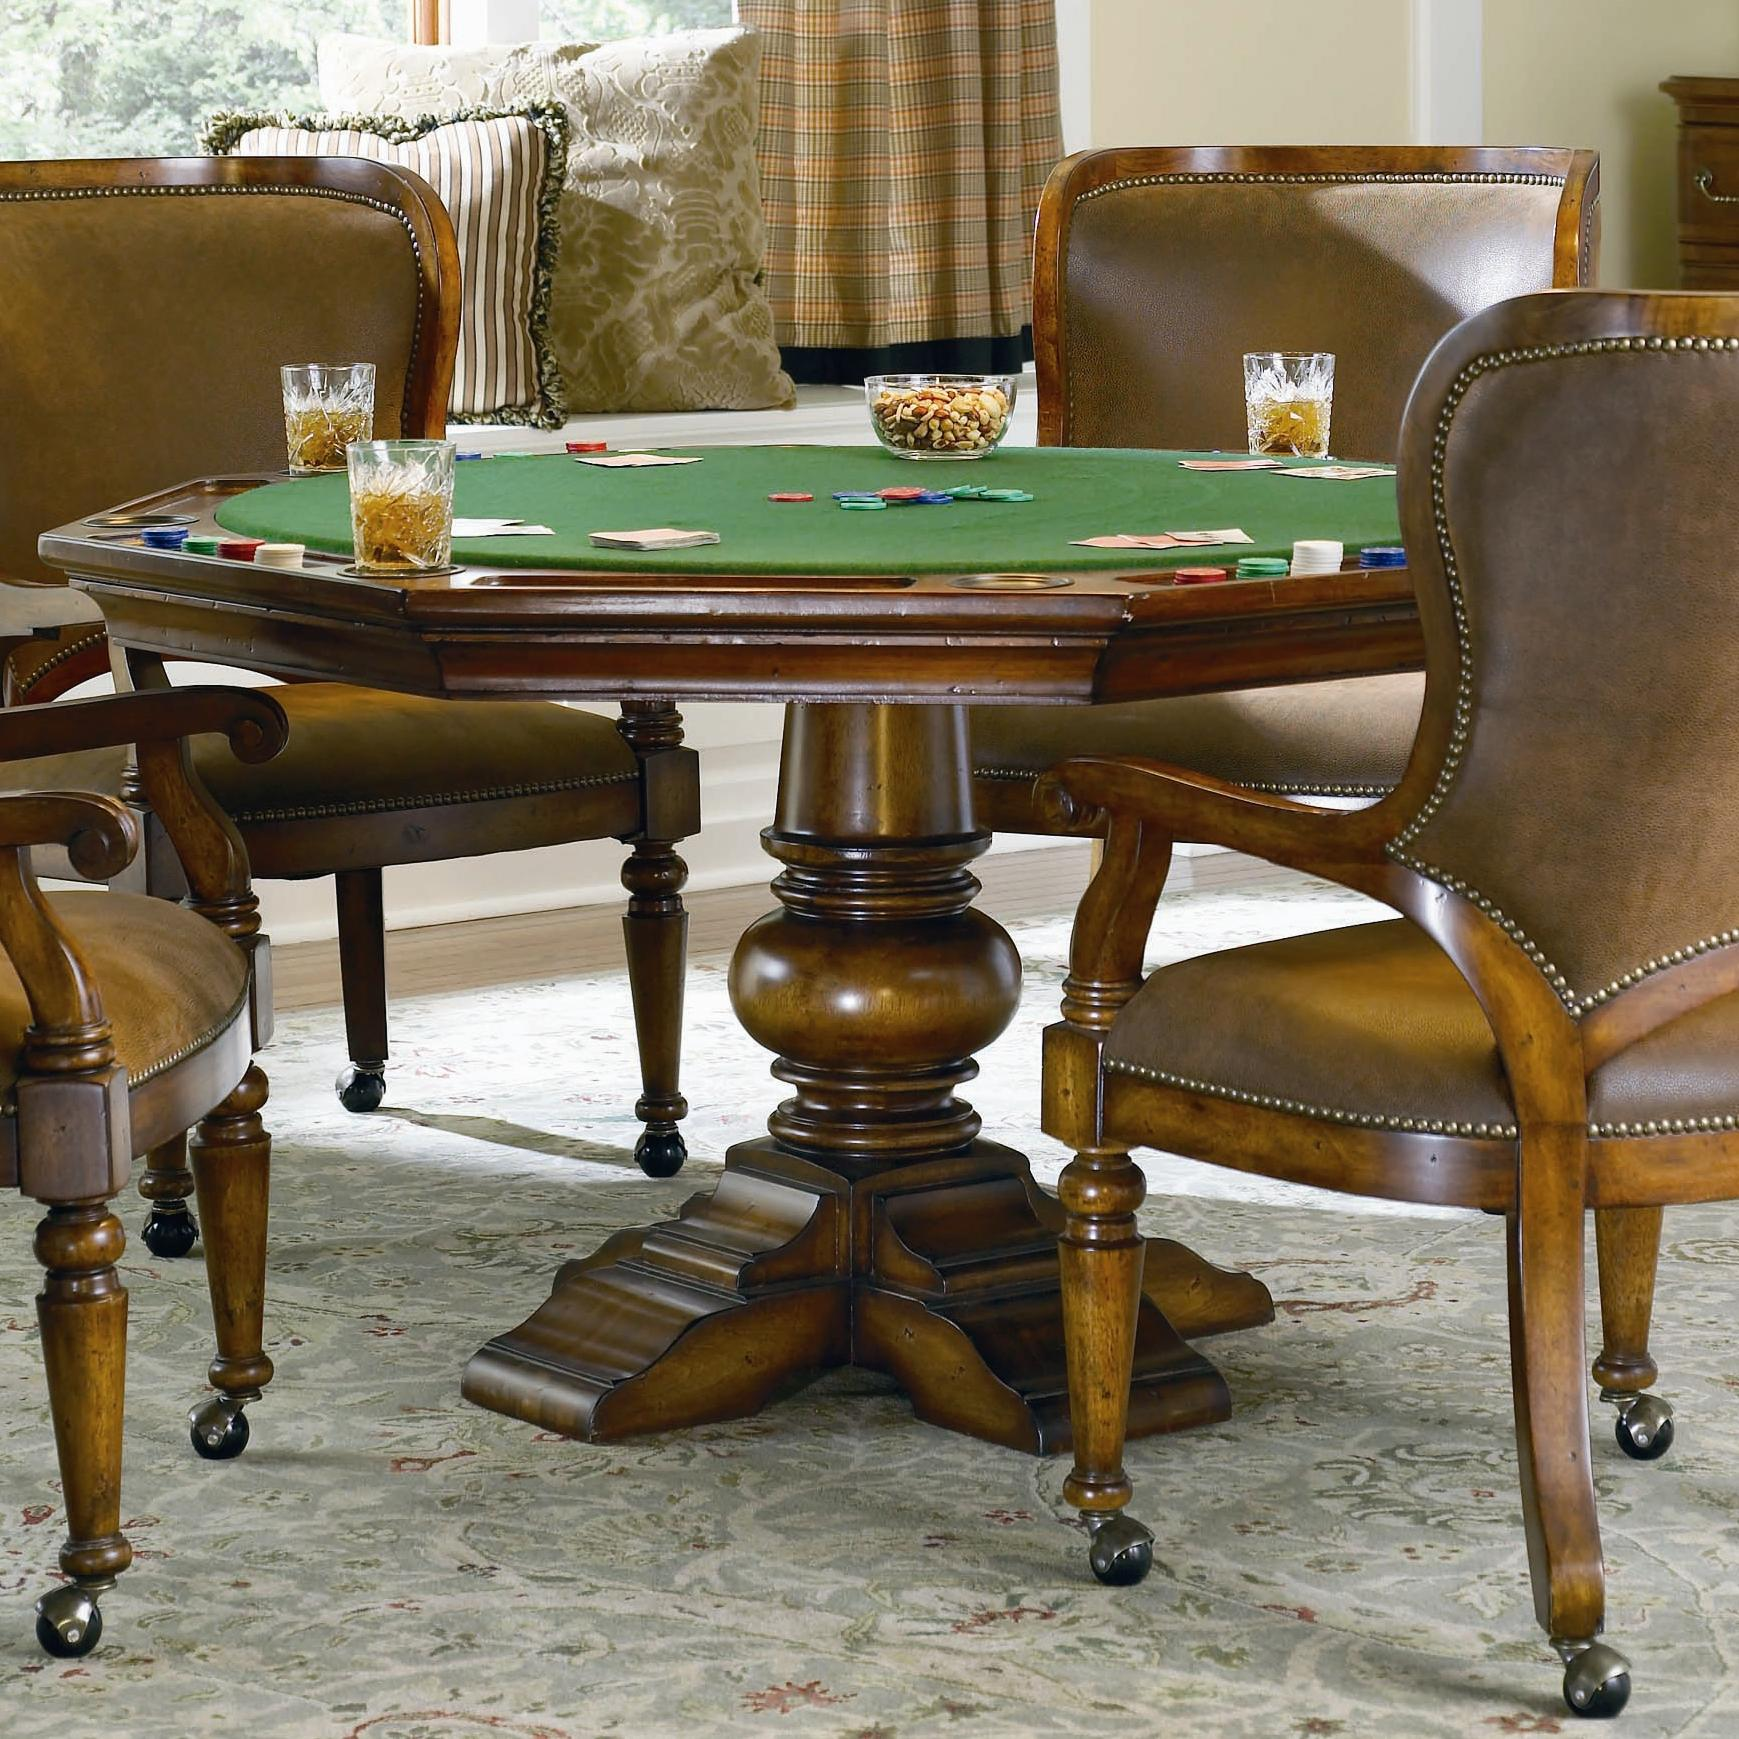 Hooker Furniture Waverly Place Reversible Poker Table - Item Number: 366-75-800